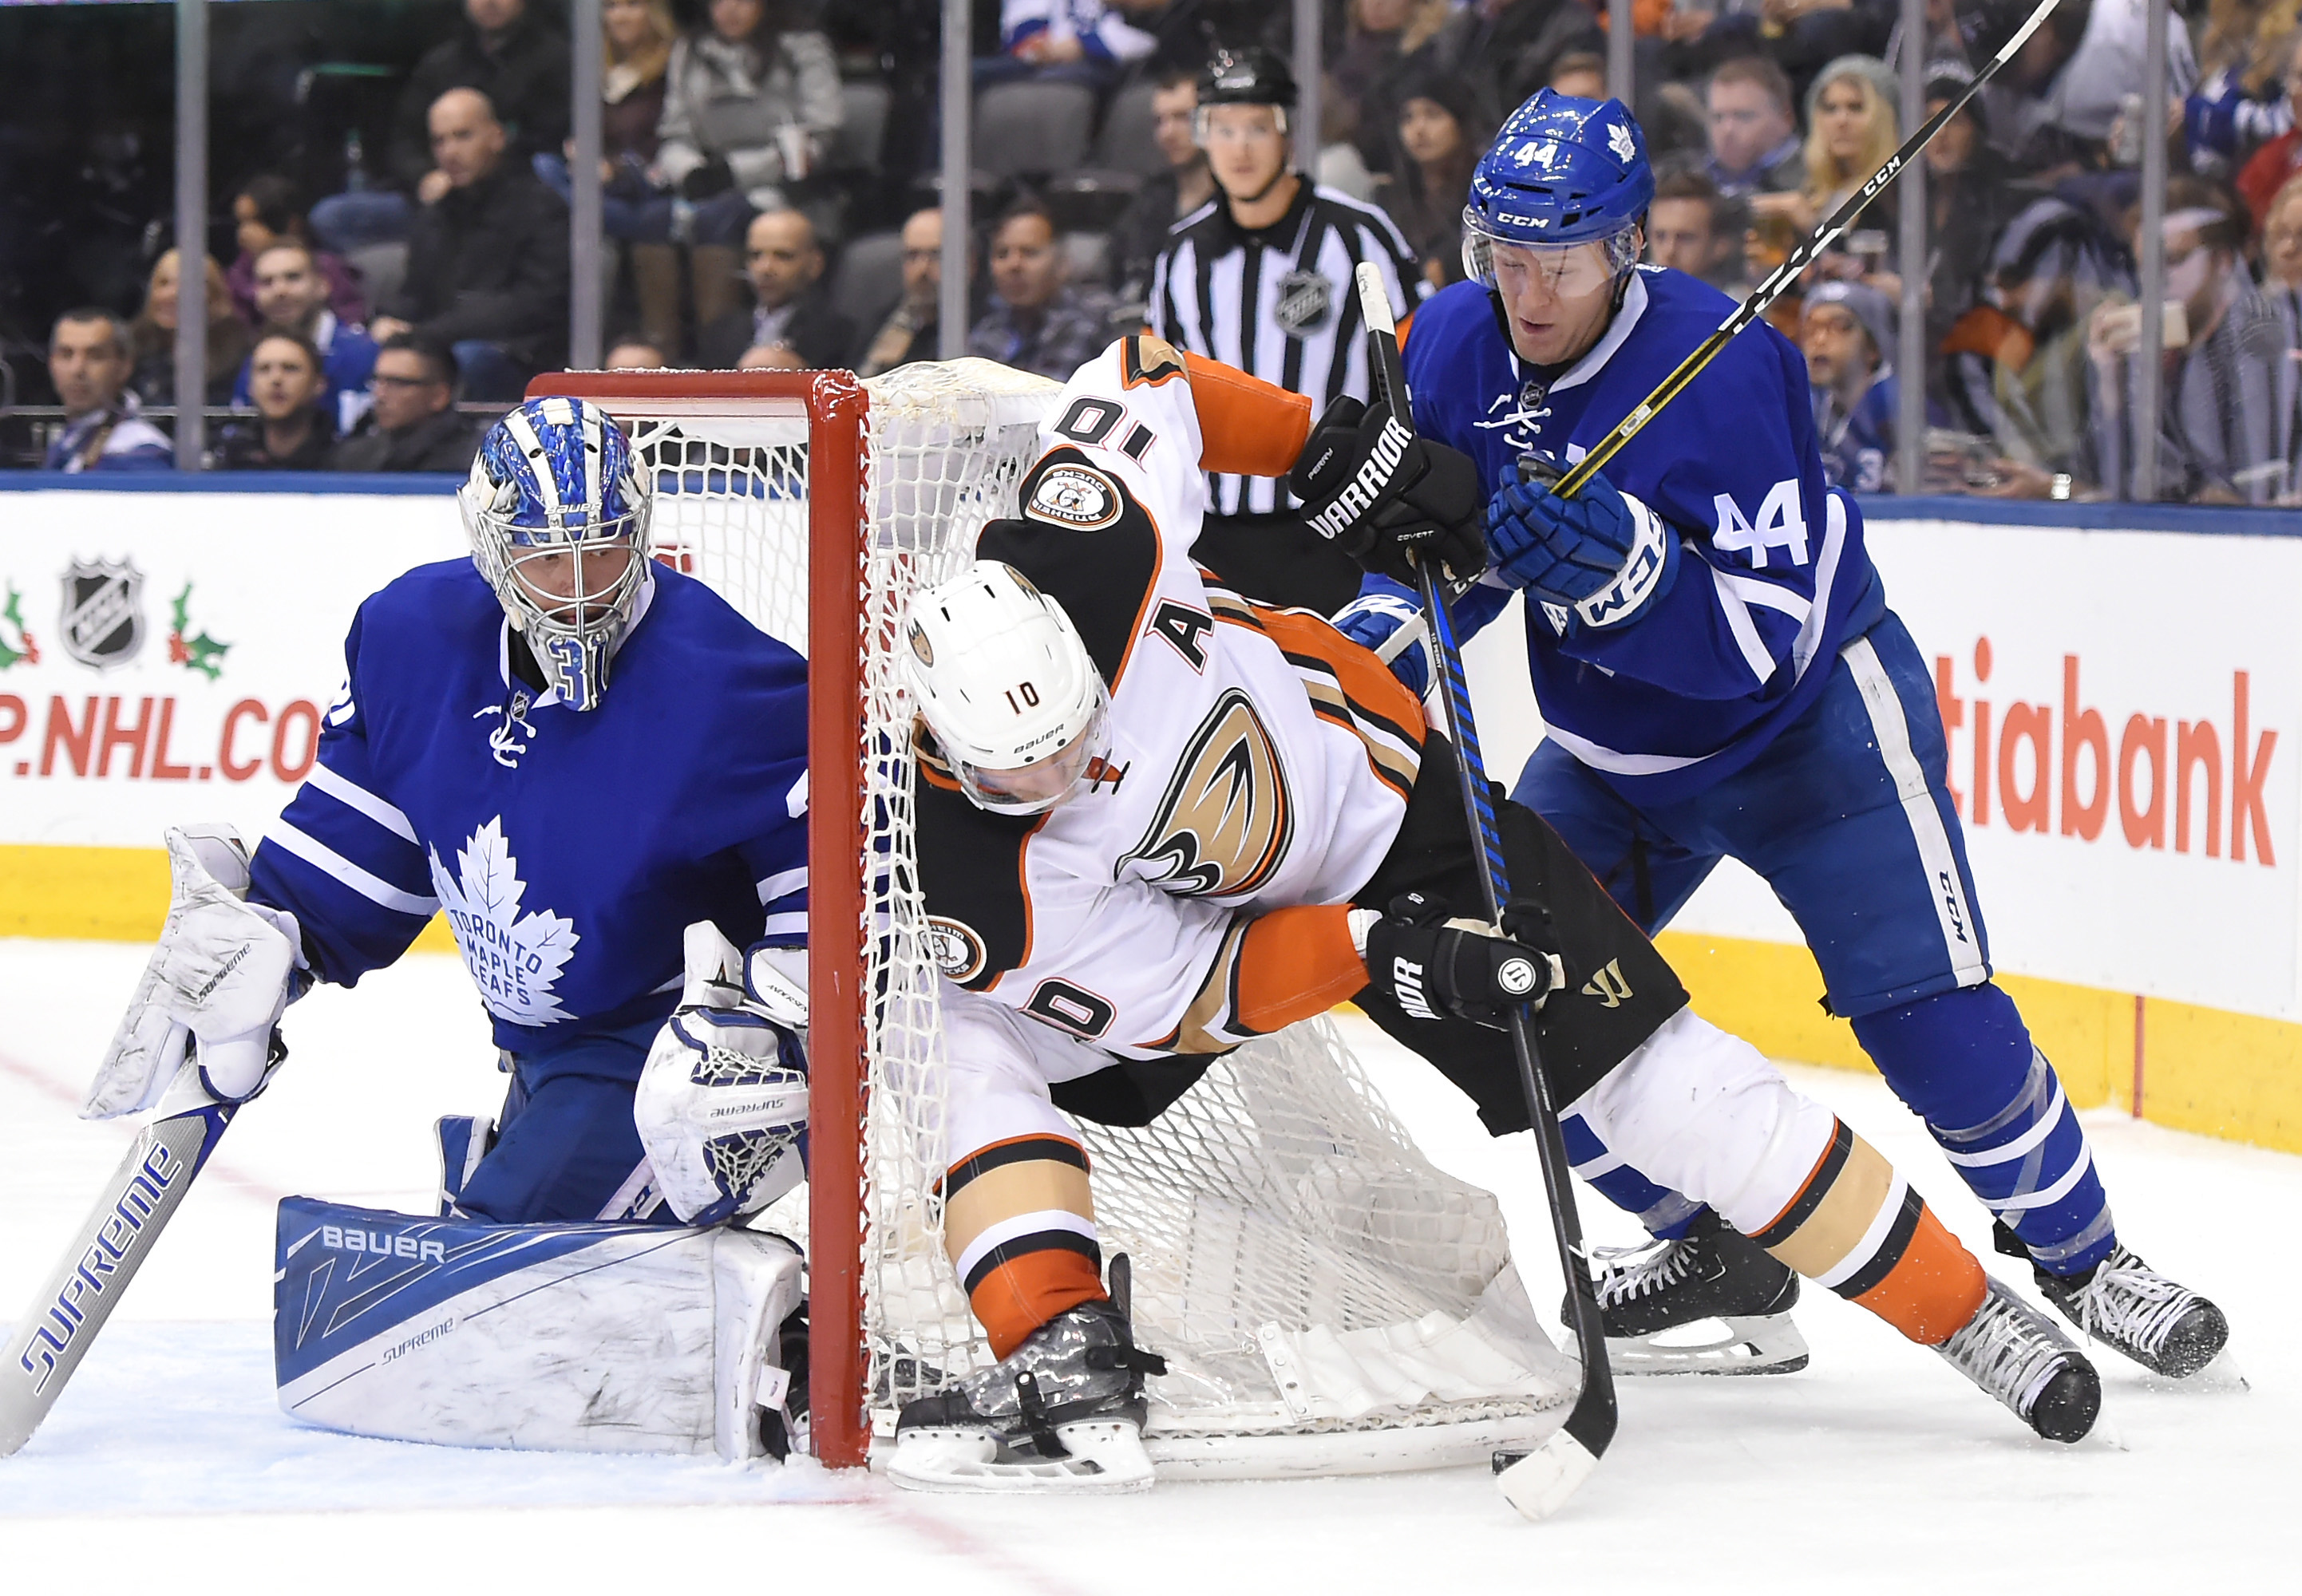 9758236-nhl-anaheim-ducks-at-toronto-maple-leafs